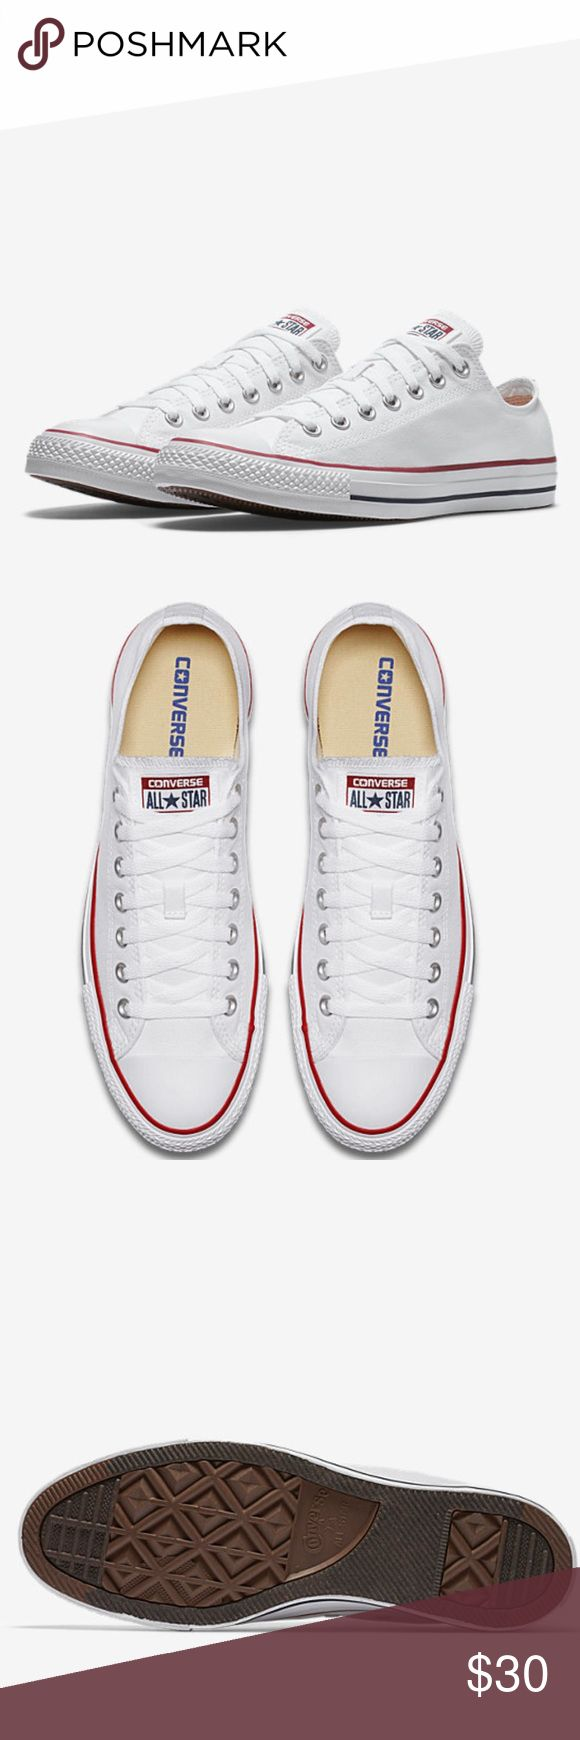 White Chuck Taylor Low Top Converse White Lowtop Size 6 Converse Converse Shoes Sneakers